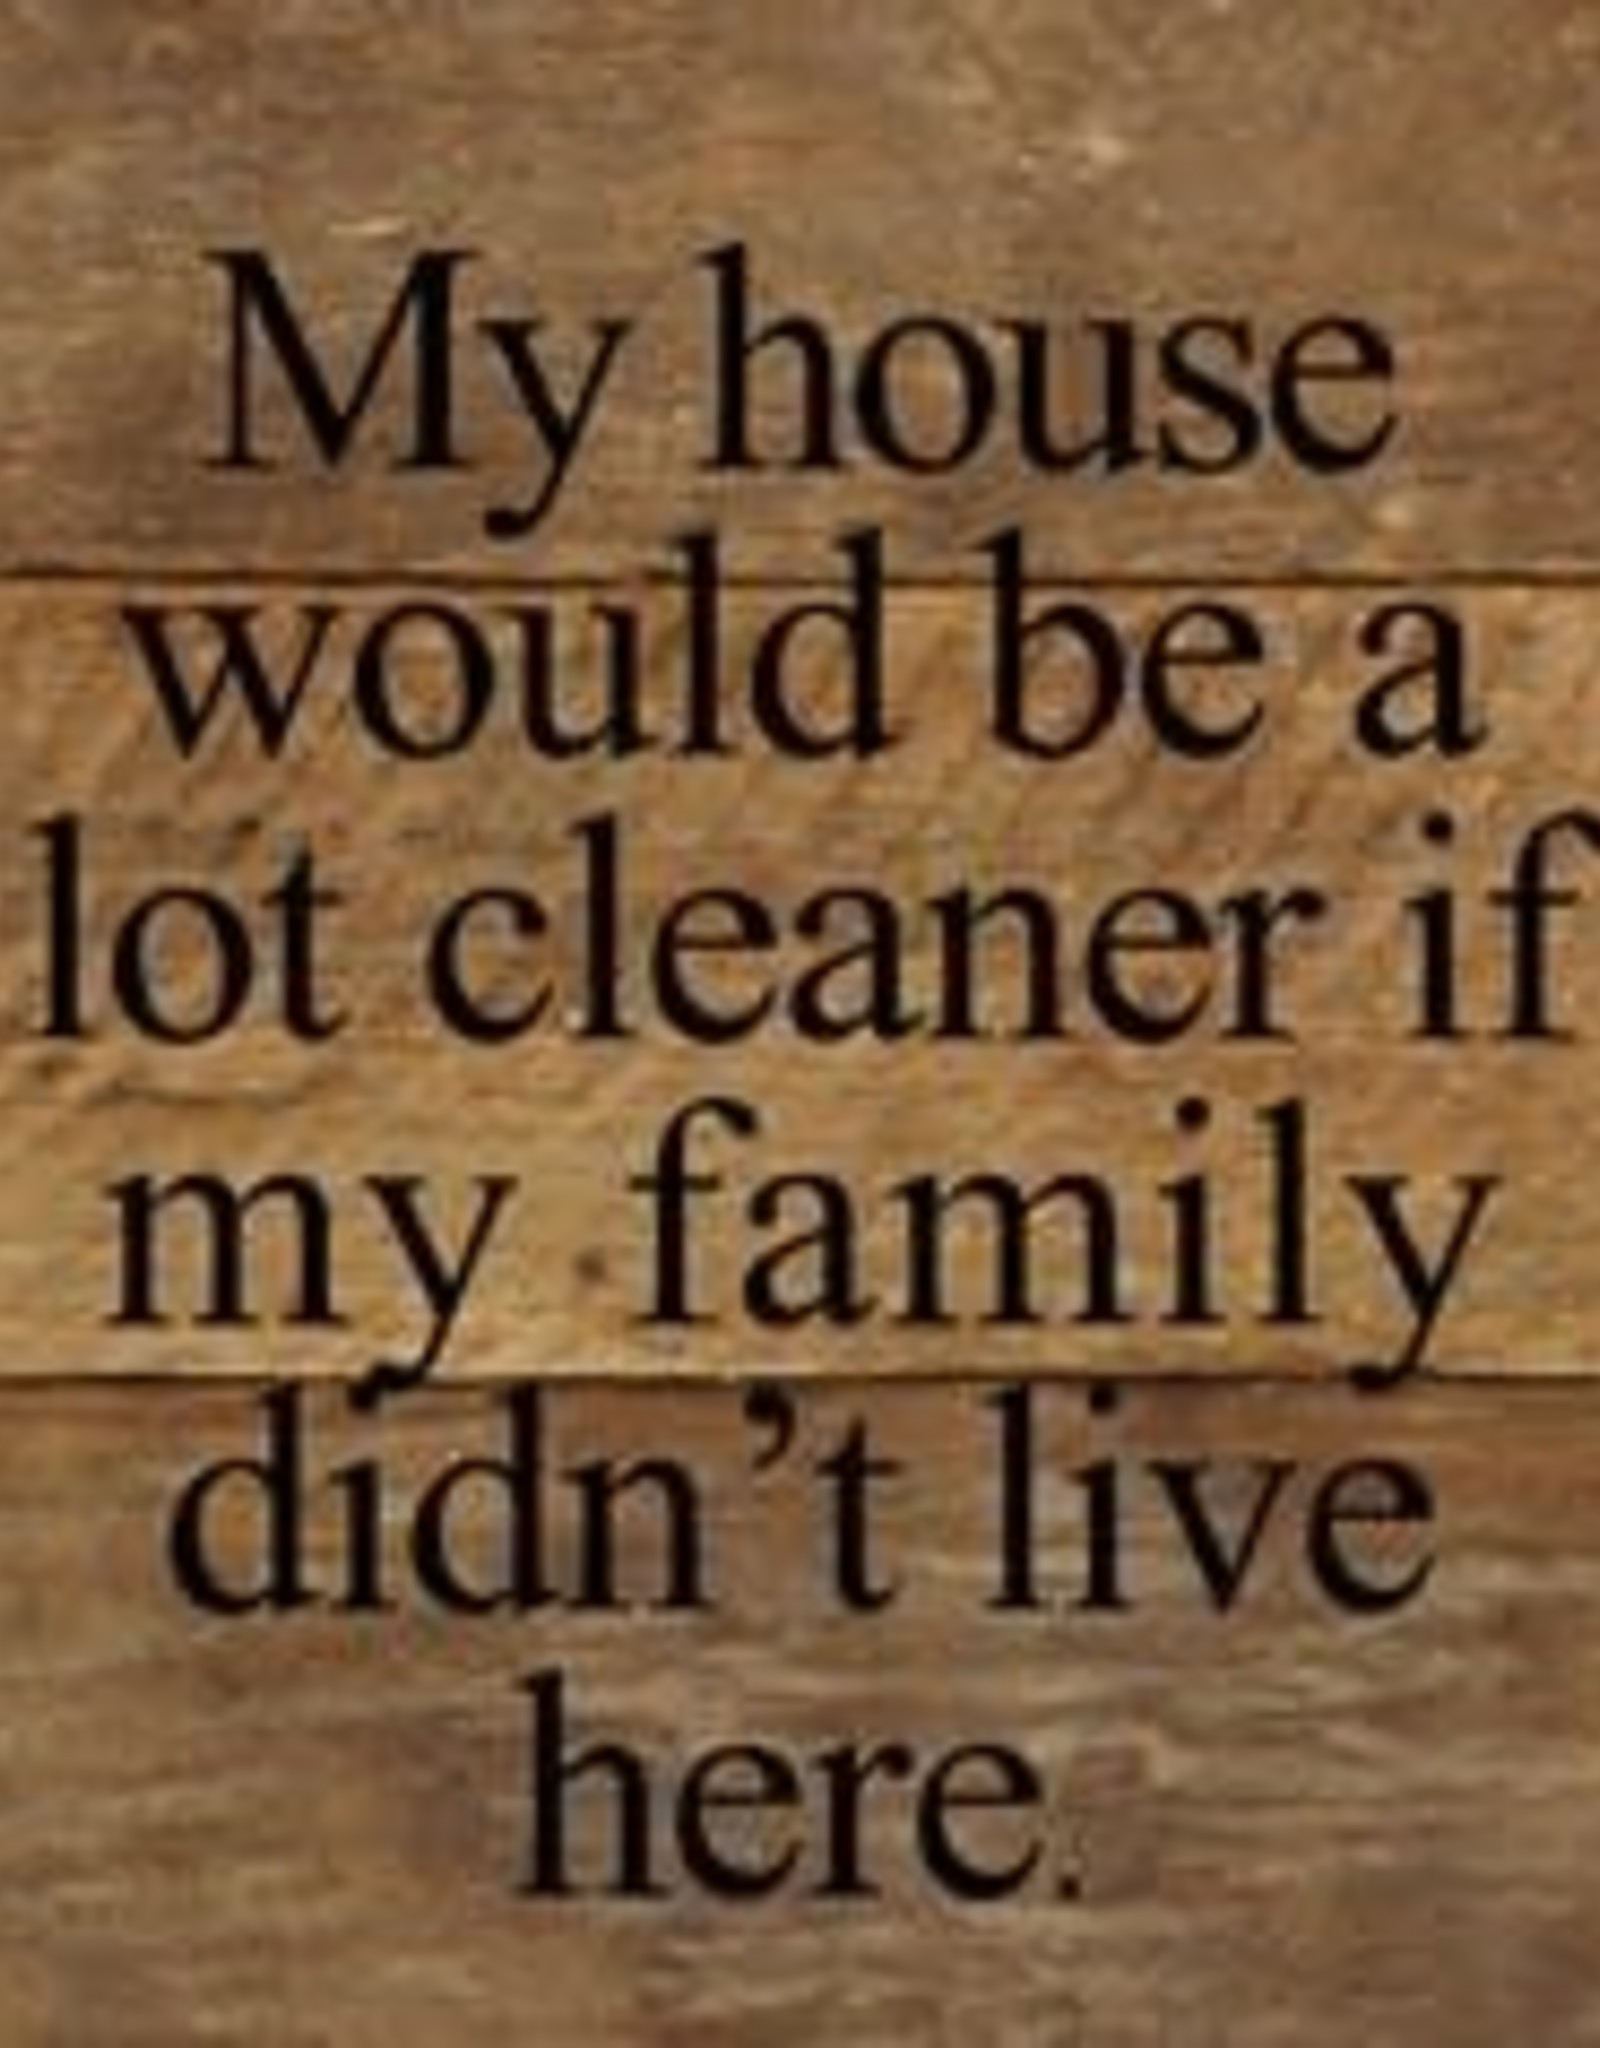 Second Nature My house would be a whole lot cleaner if - wood sign